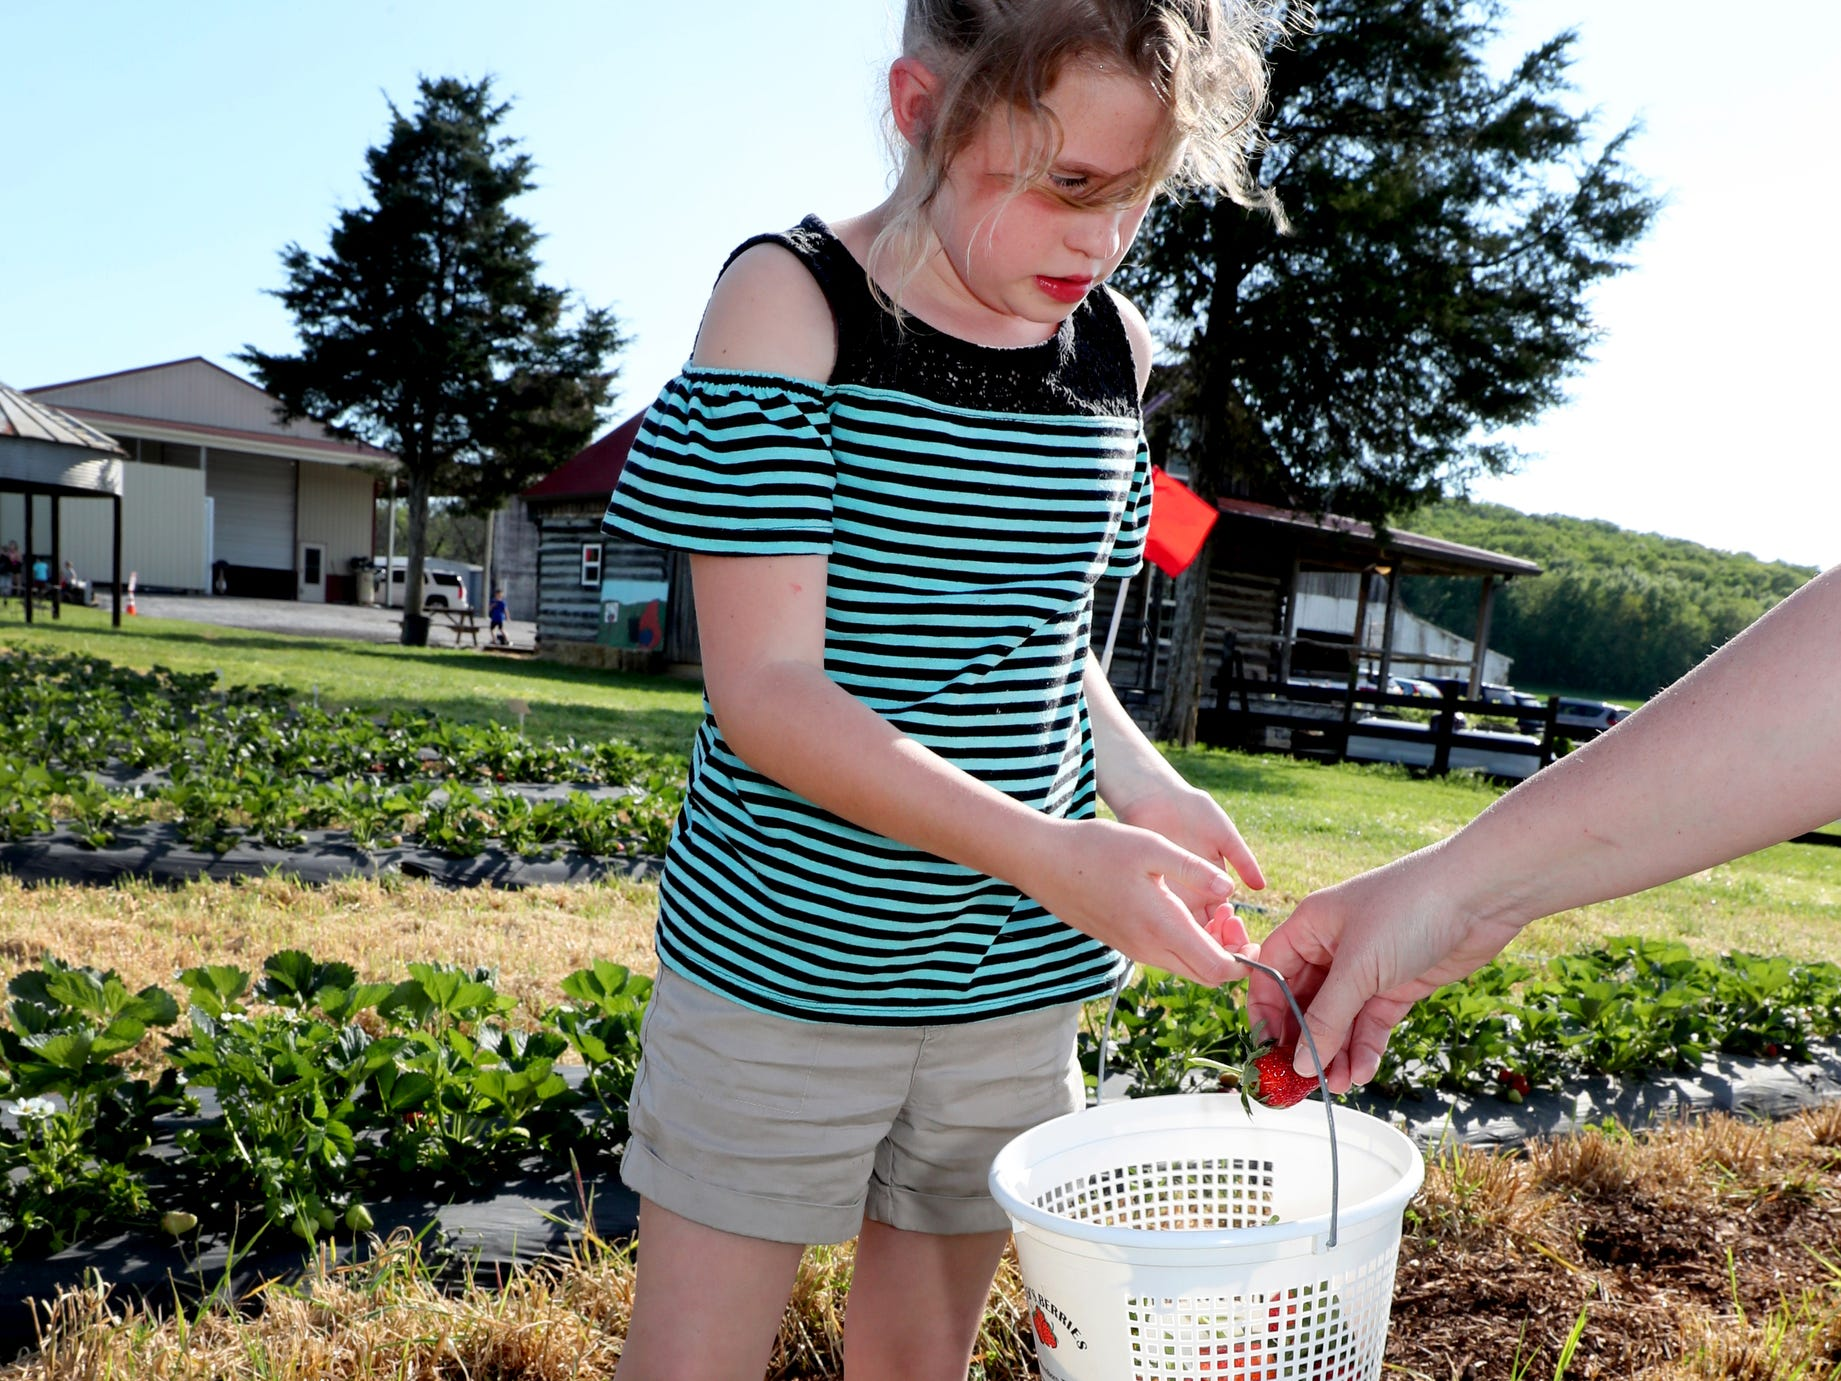 Ada Trotter, 7, has help from her mom Stevie Trotter filling her basket with strawberries on Wednesday April 24, 2019, at Batey Farms in Murfreesboro.